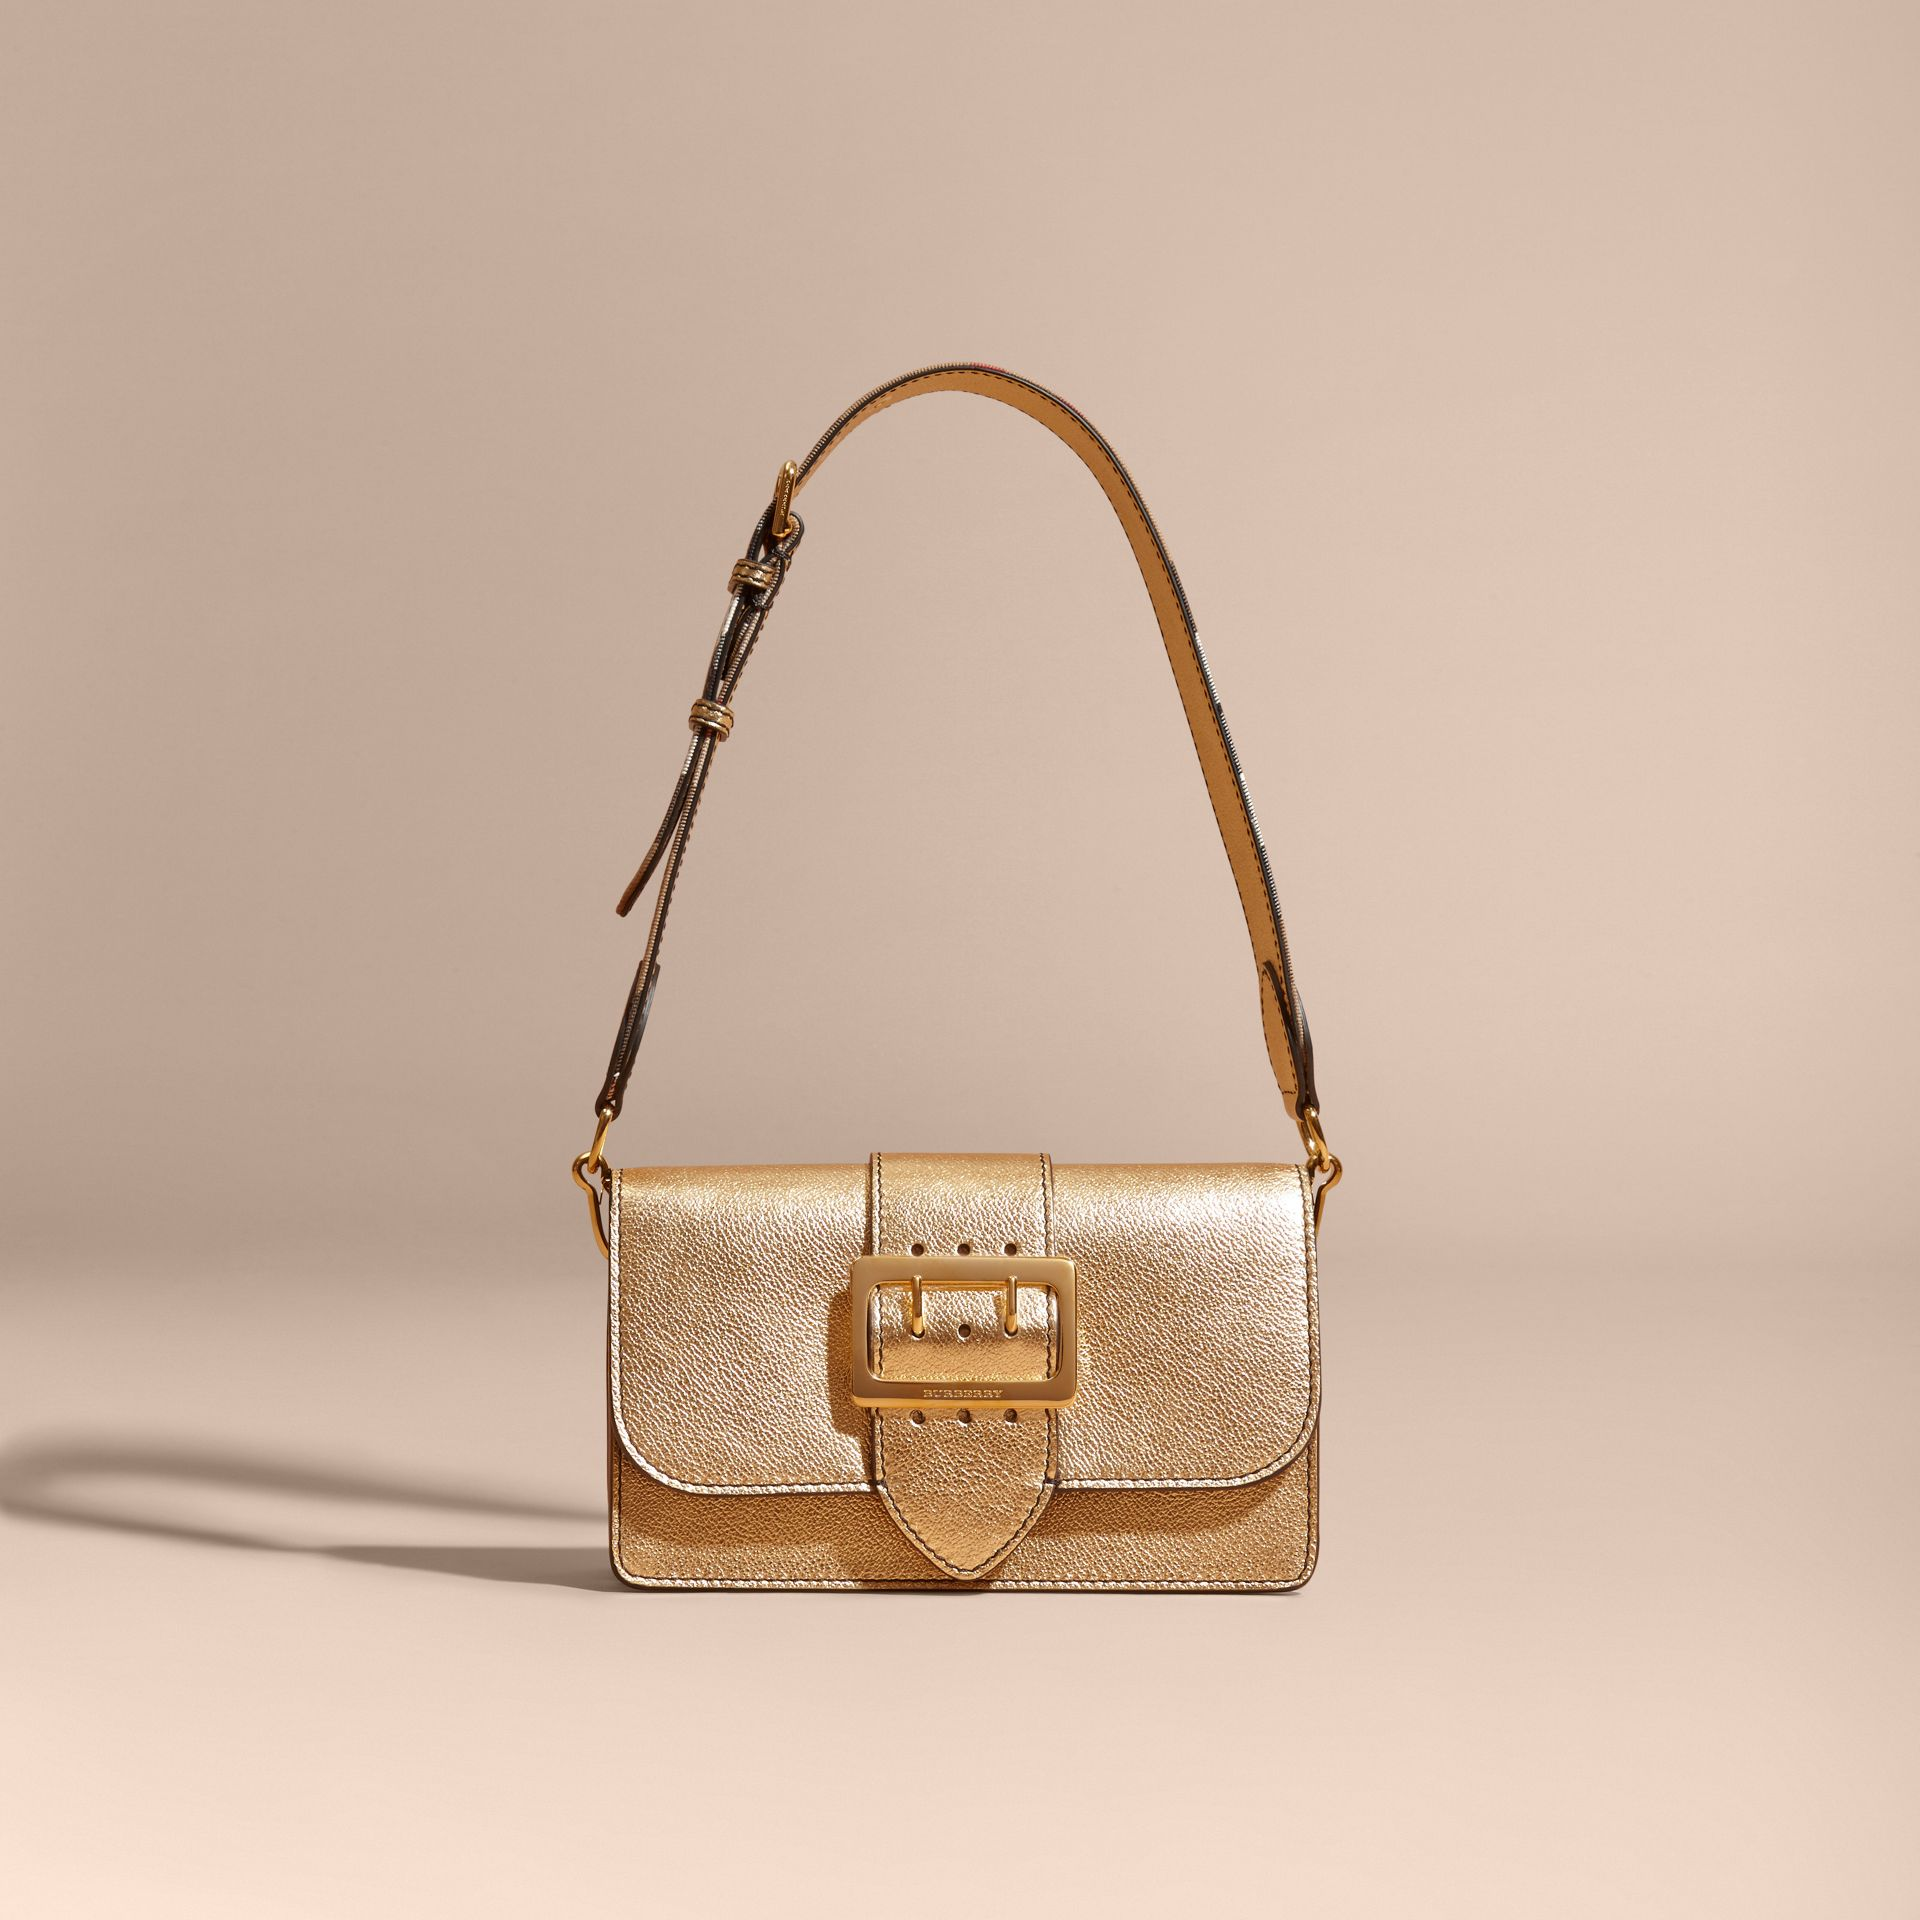 Goldfarben The Medium Buckle Bag aus Metallic-Leder - Galerie-Bild 9